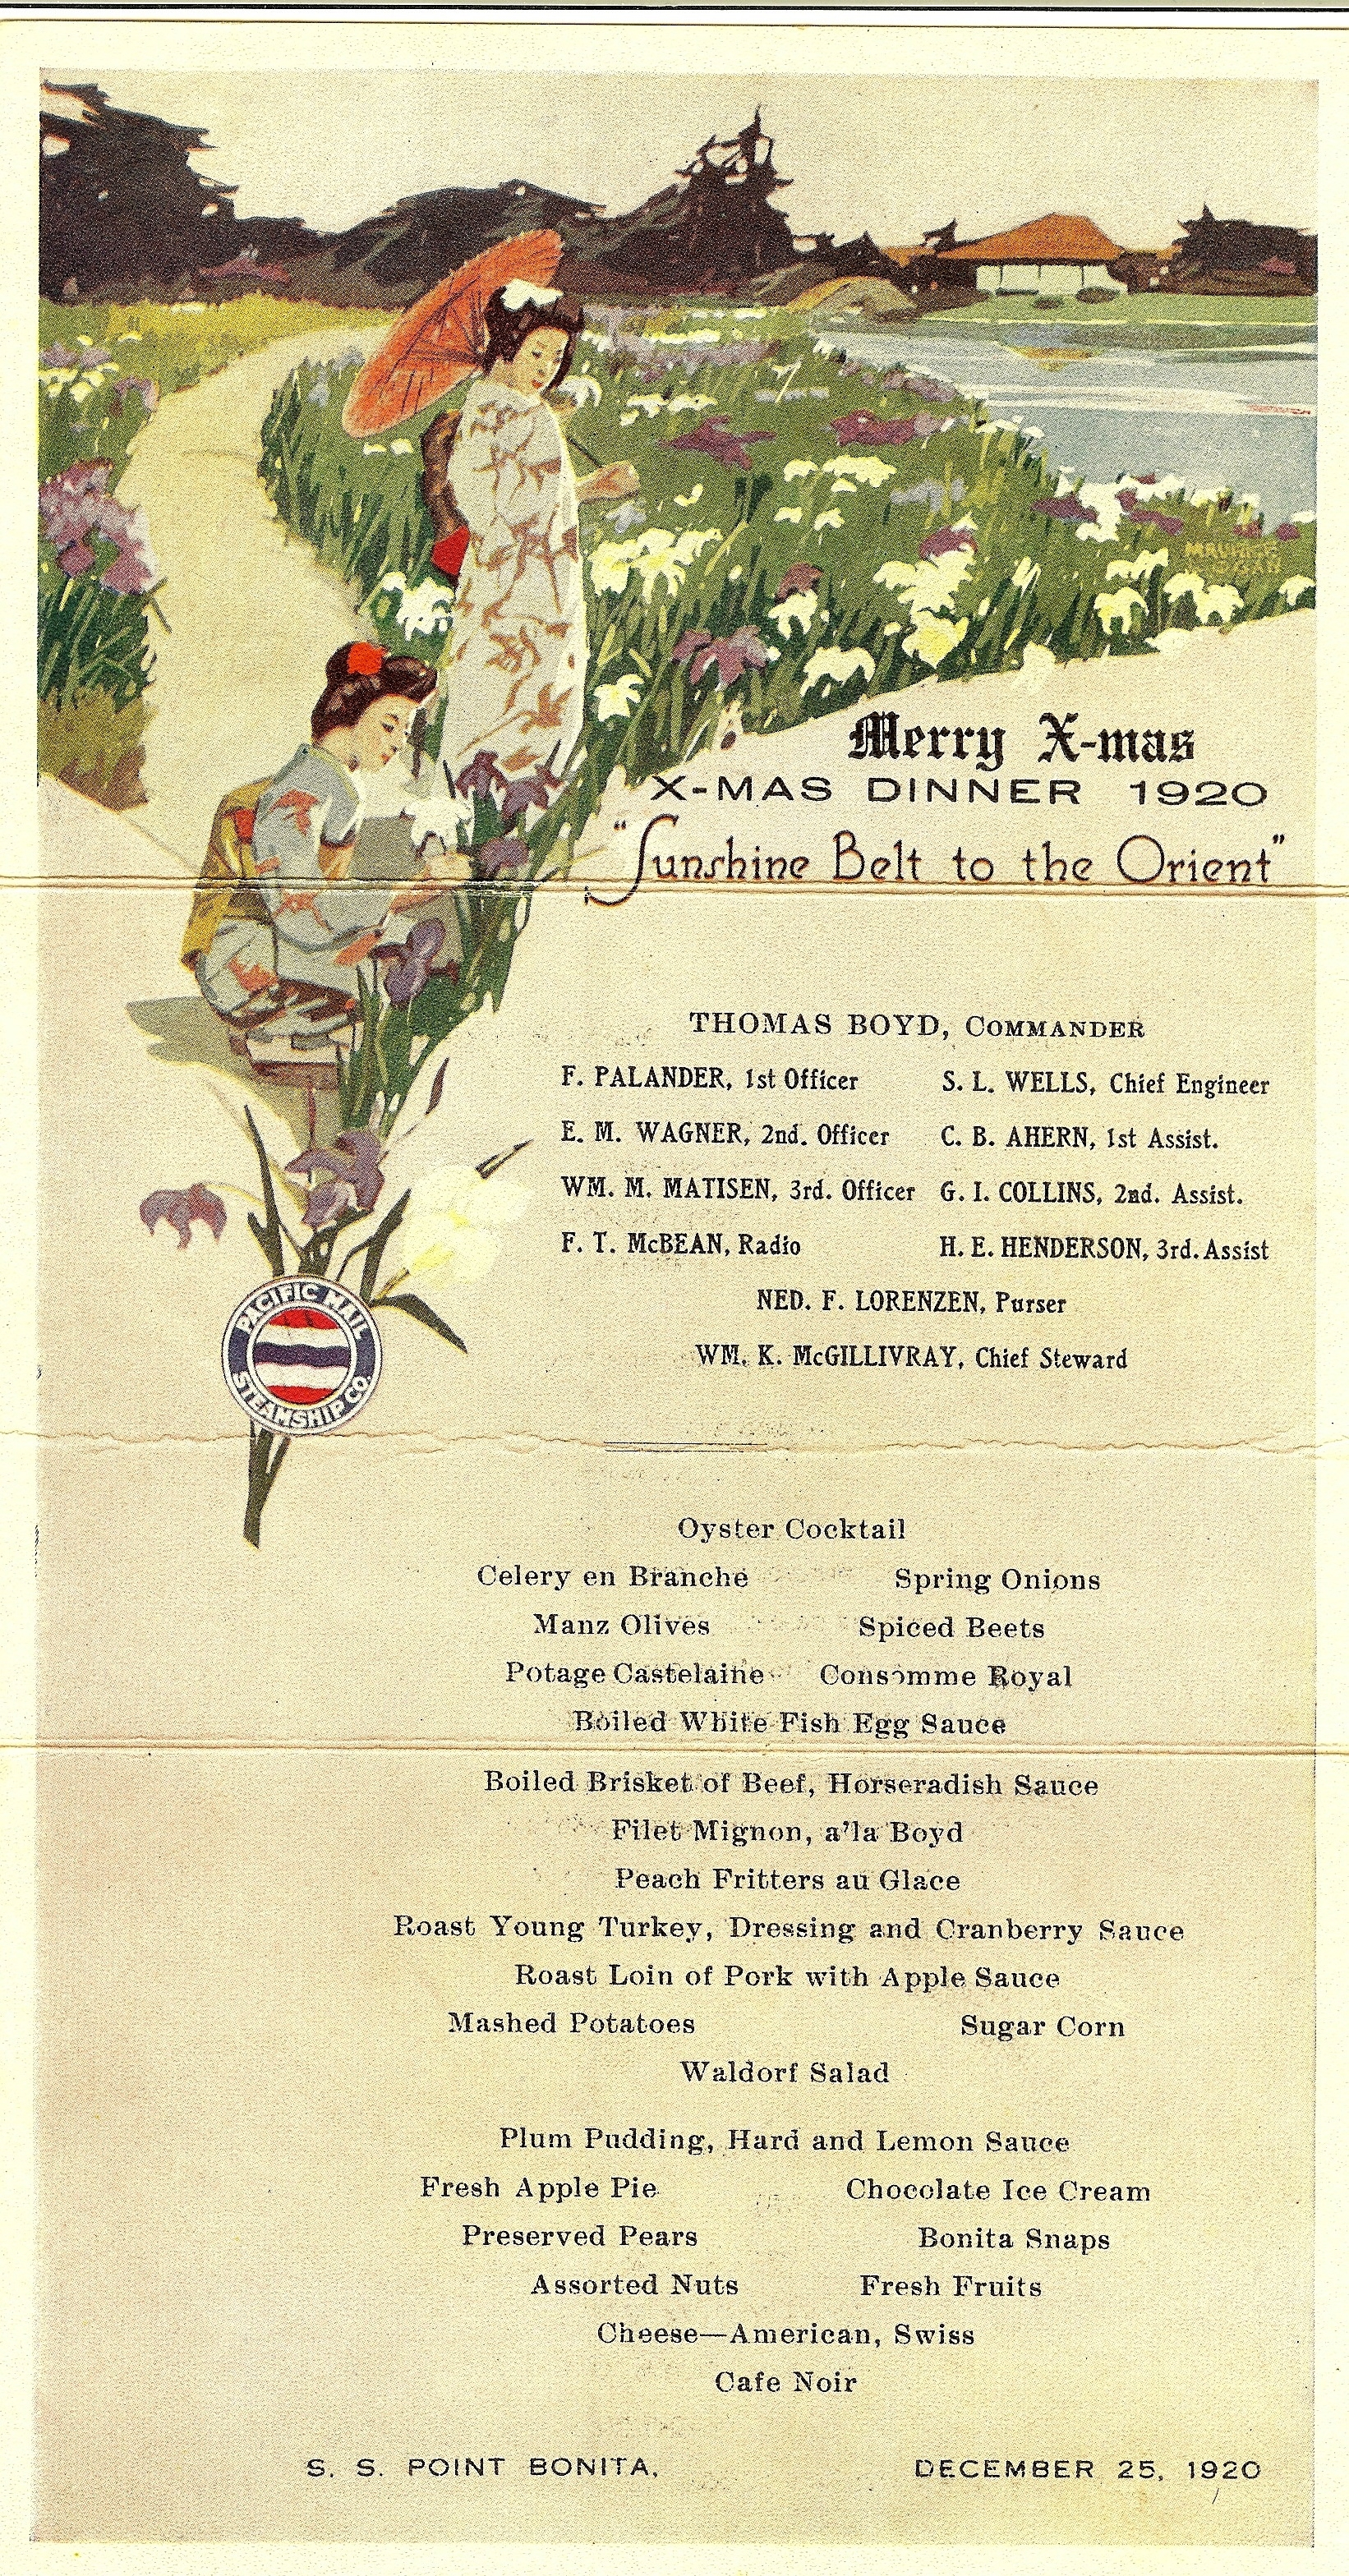 S.S. Point Bonita, Christmas dinner menu, 1920